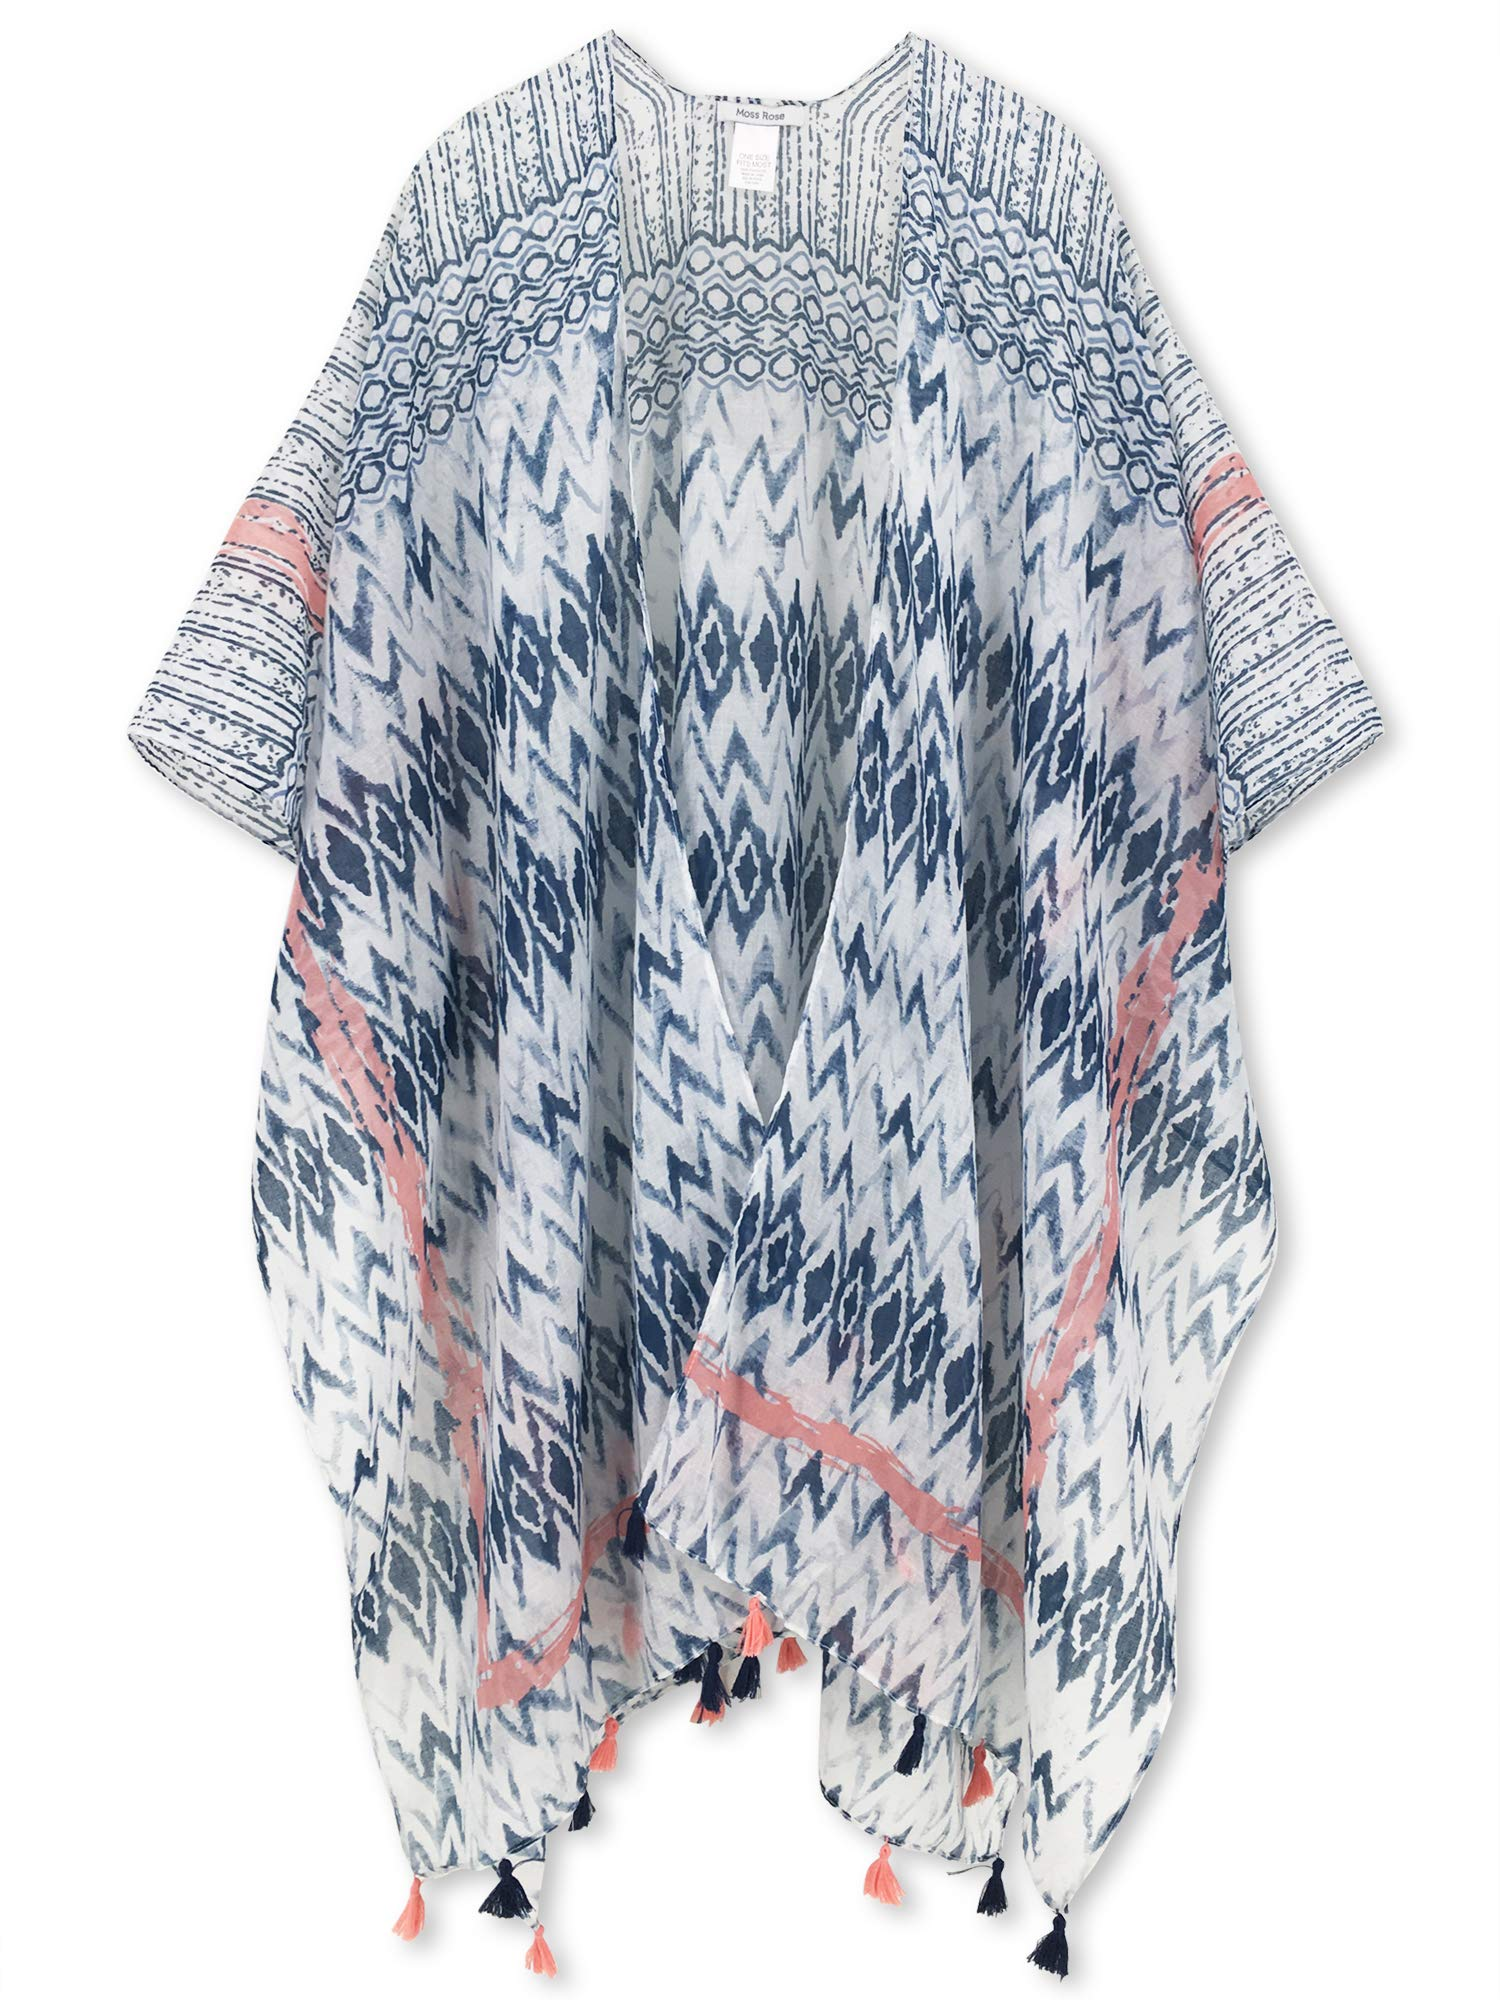 Moss Rose Women's Beach Cover up Swimsuit Kimono Cardigan with Bohemian Floral Print (Color 8)